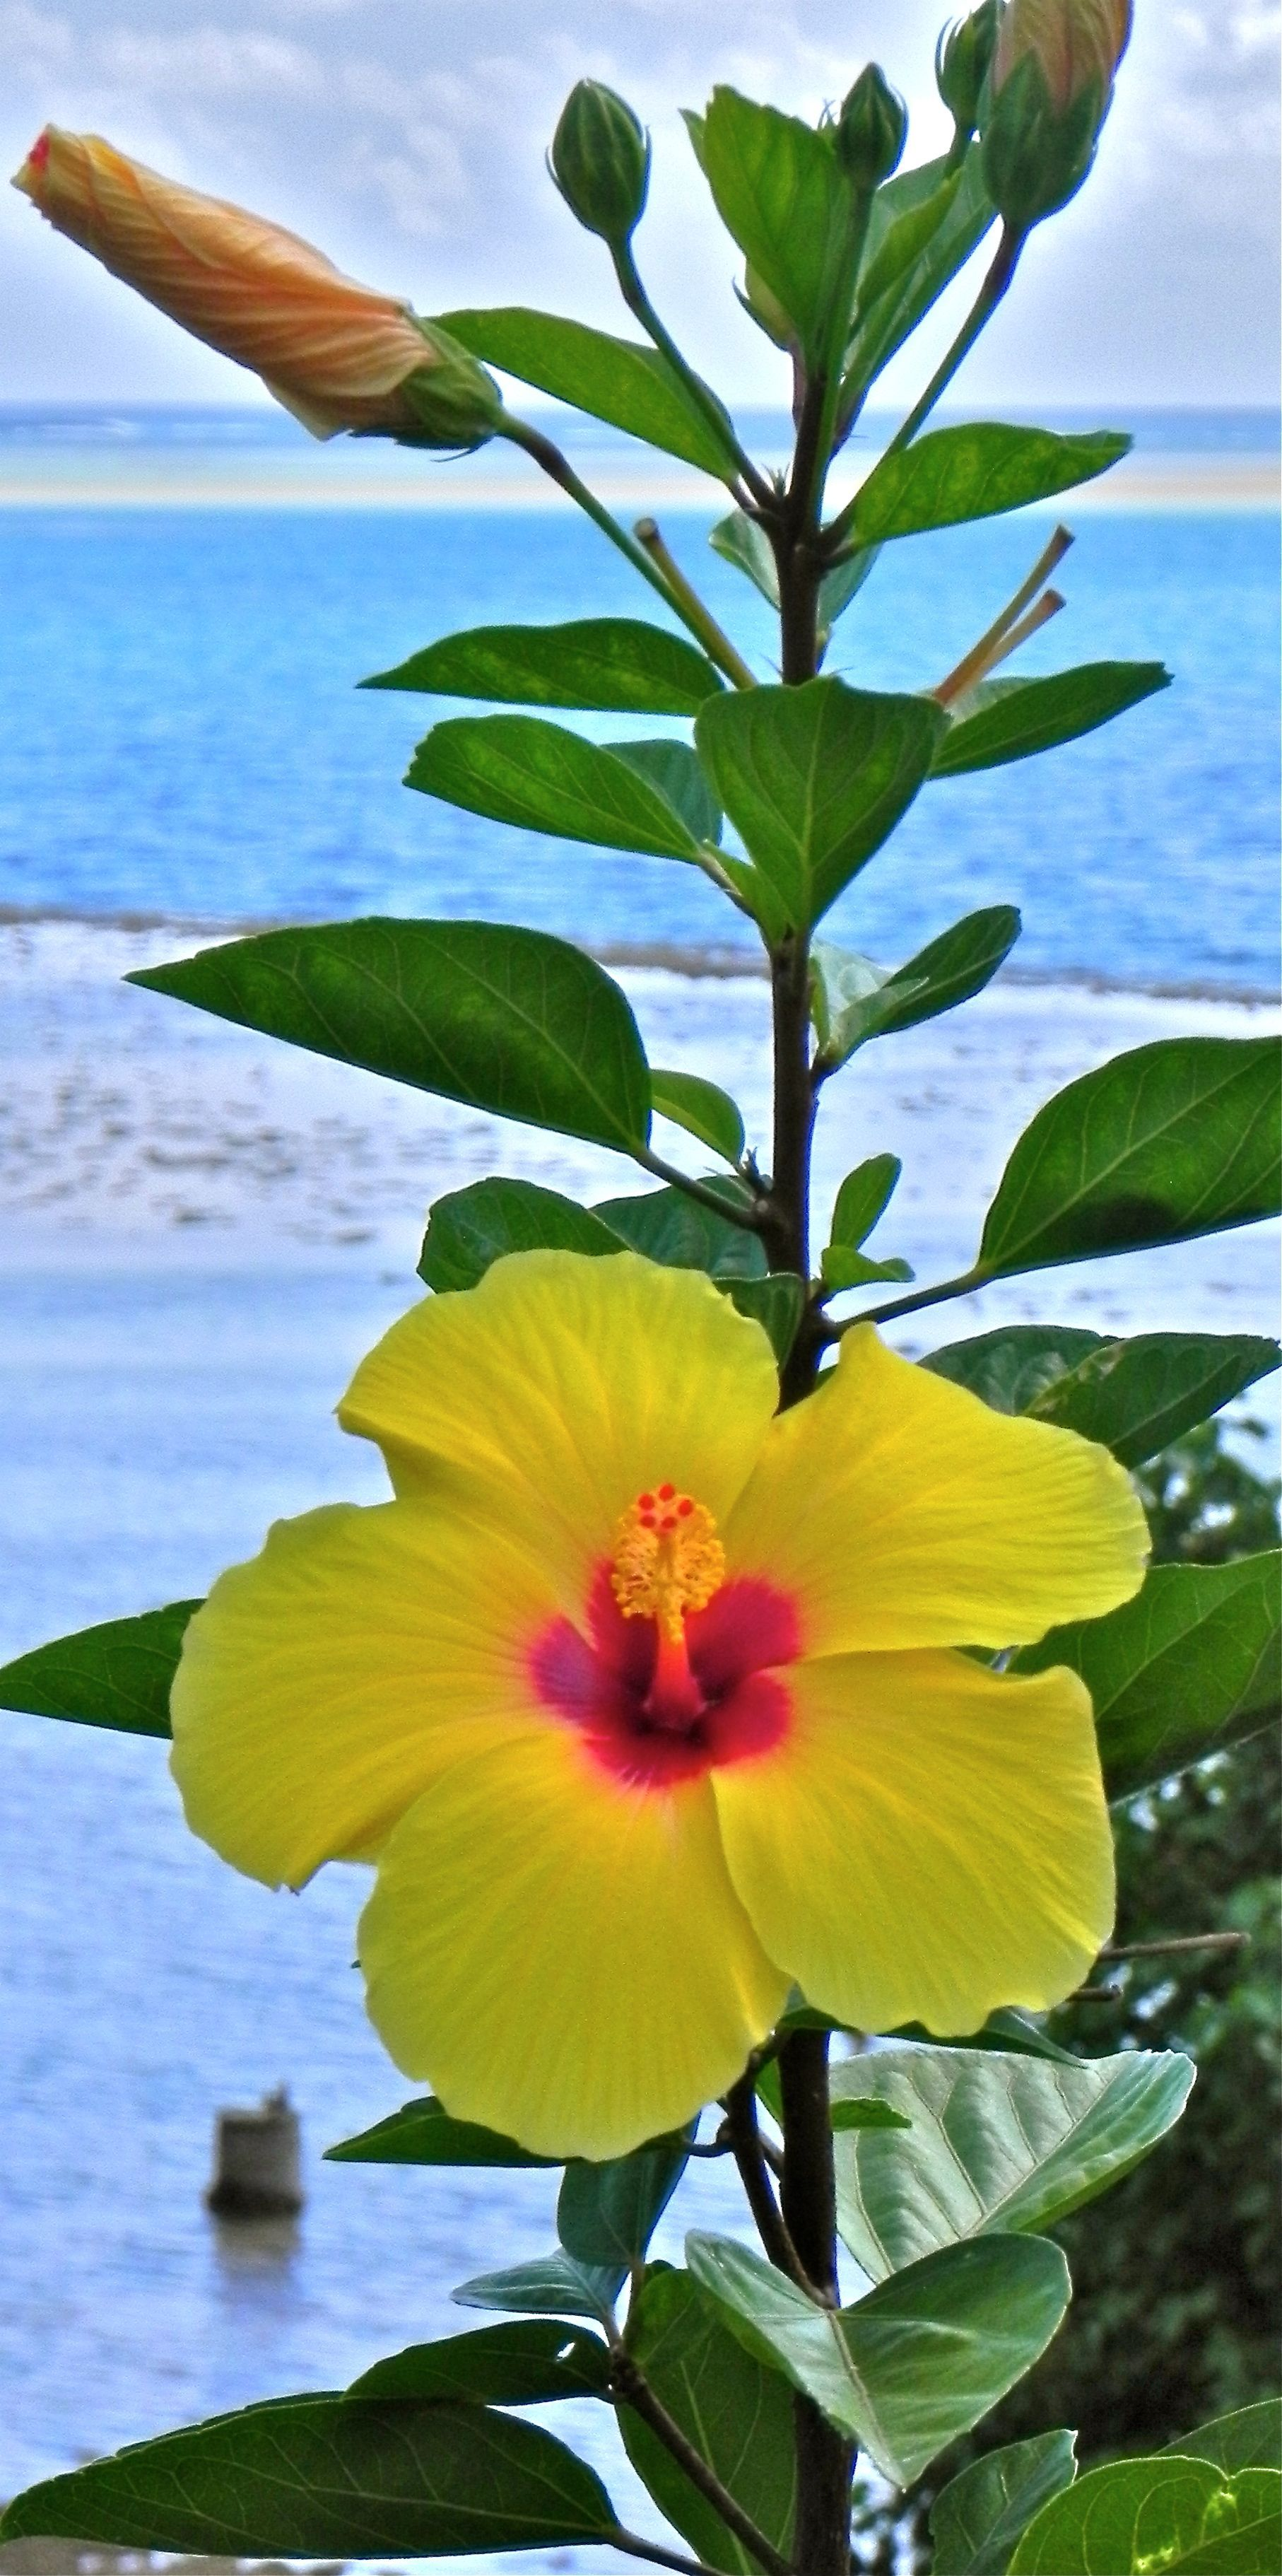 Hibiscus Hawaii Aunt Donnas Favorite Flower She Can